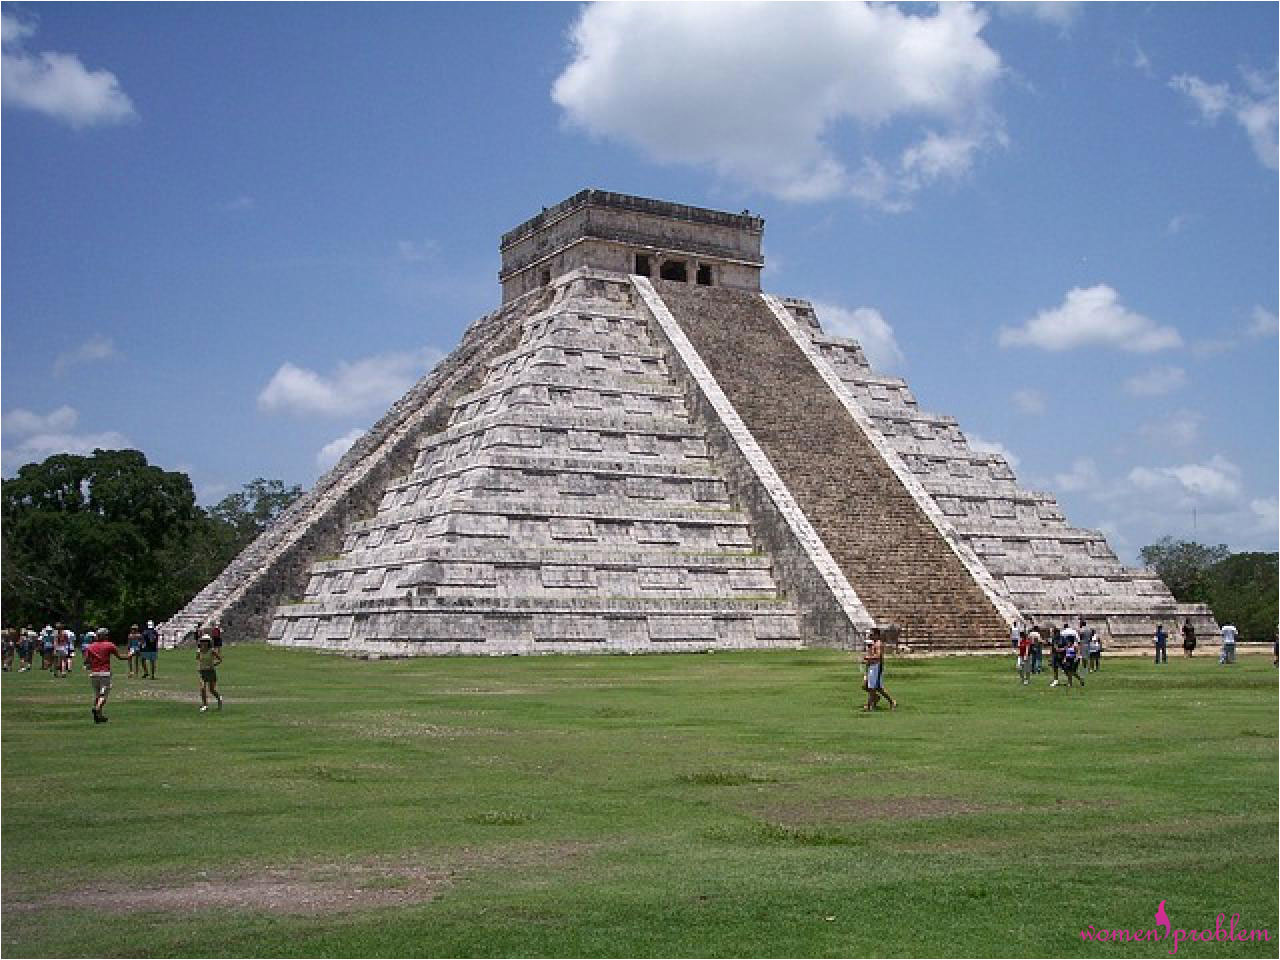 Mayan city of Chechen Itza